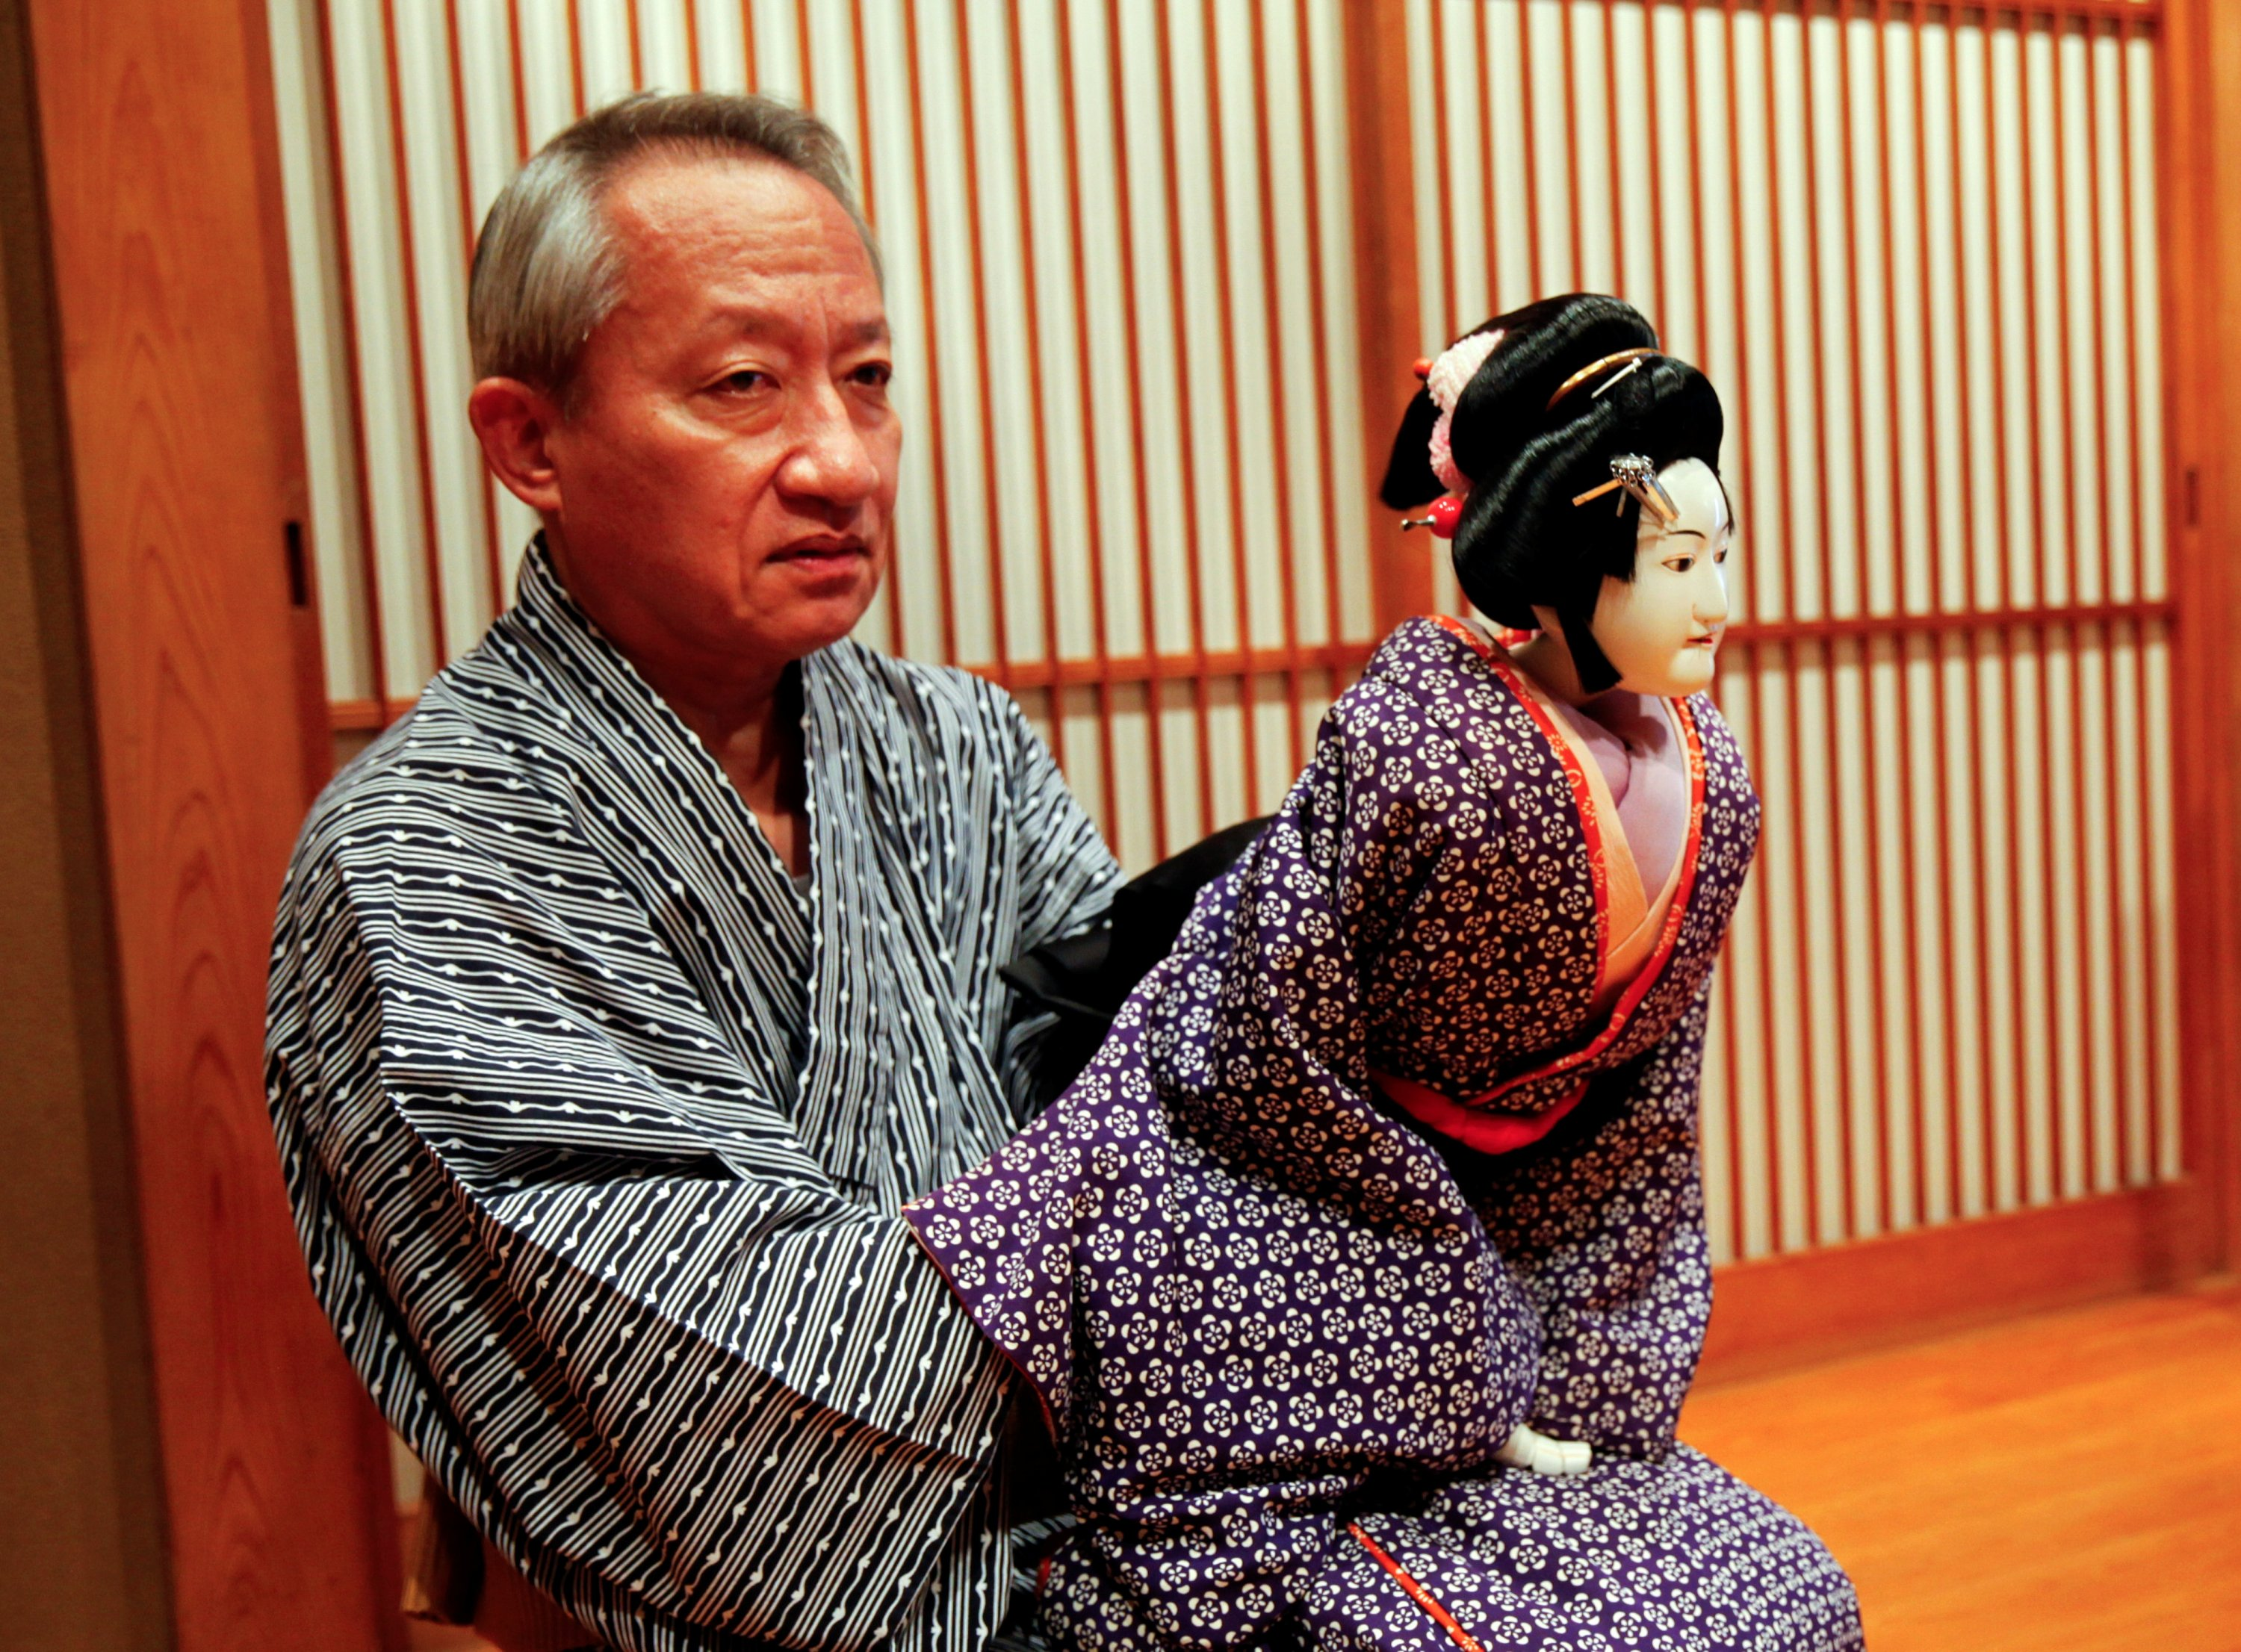 Kanjuro Kiritake poses for a photograph with a puppet in his practice room at his house in Osaka, western Japan, Aug. 28, 2020.  (REUTERS PHOTO)